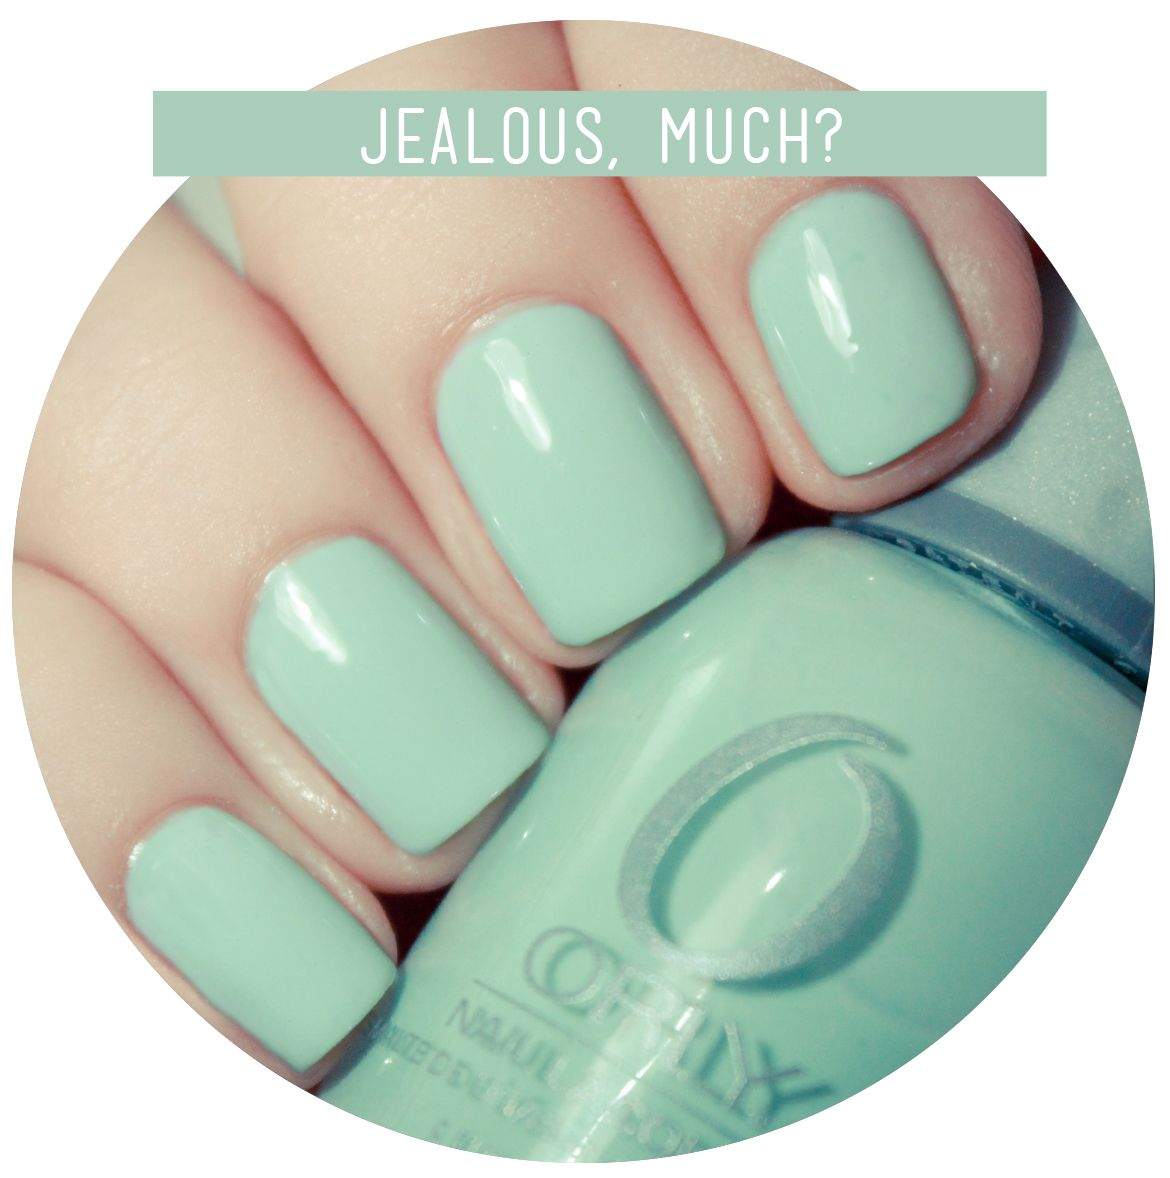 I\'ve been looking for a mint shade-Orly nail polish in Jealous, much ...